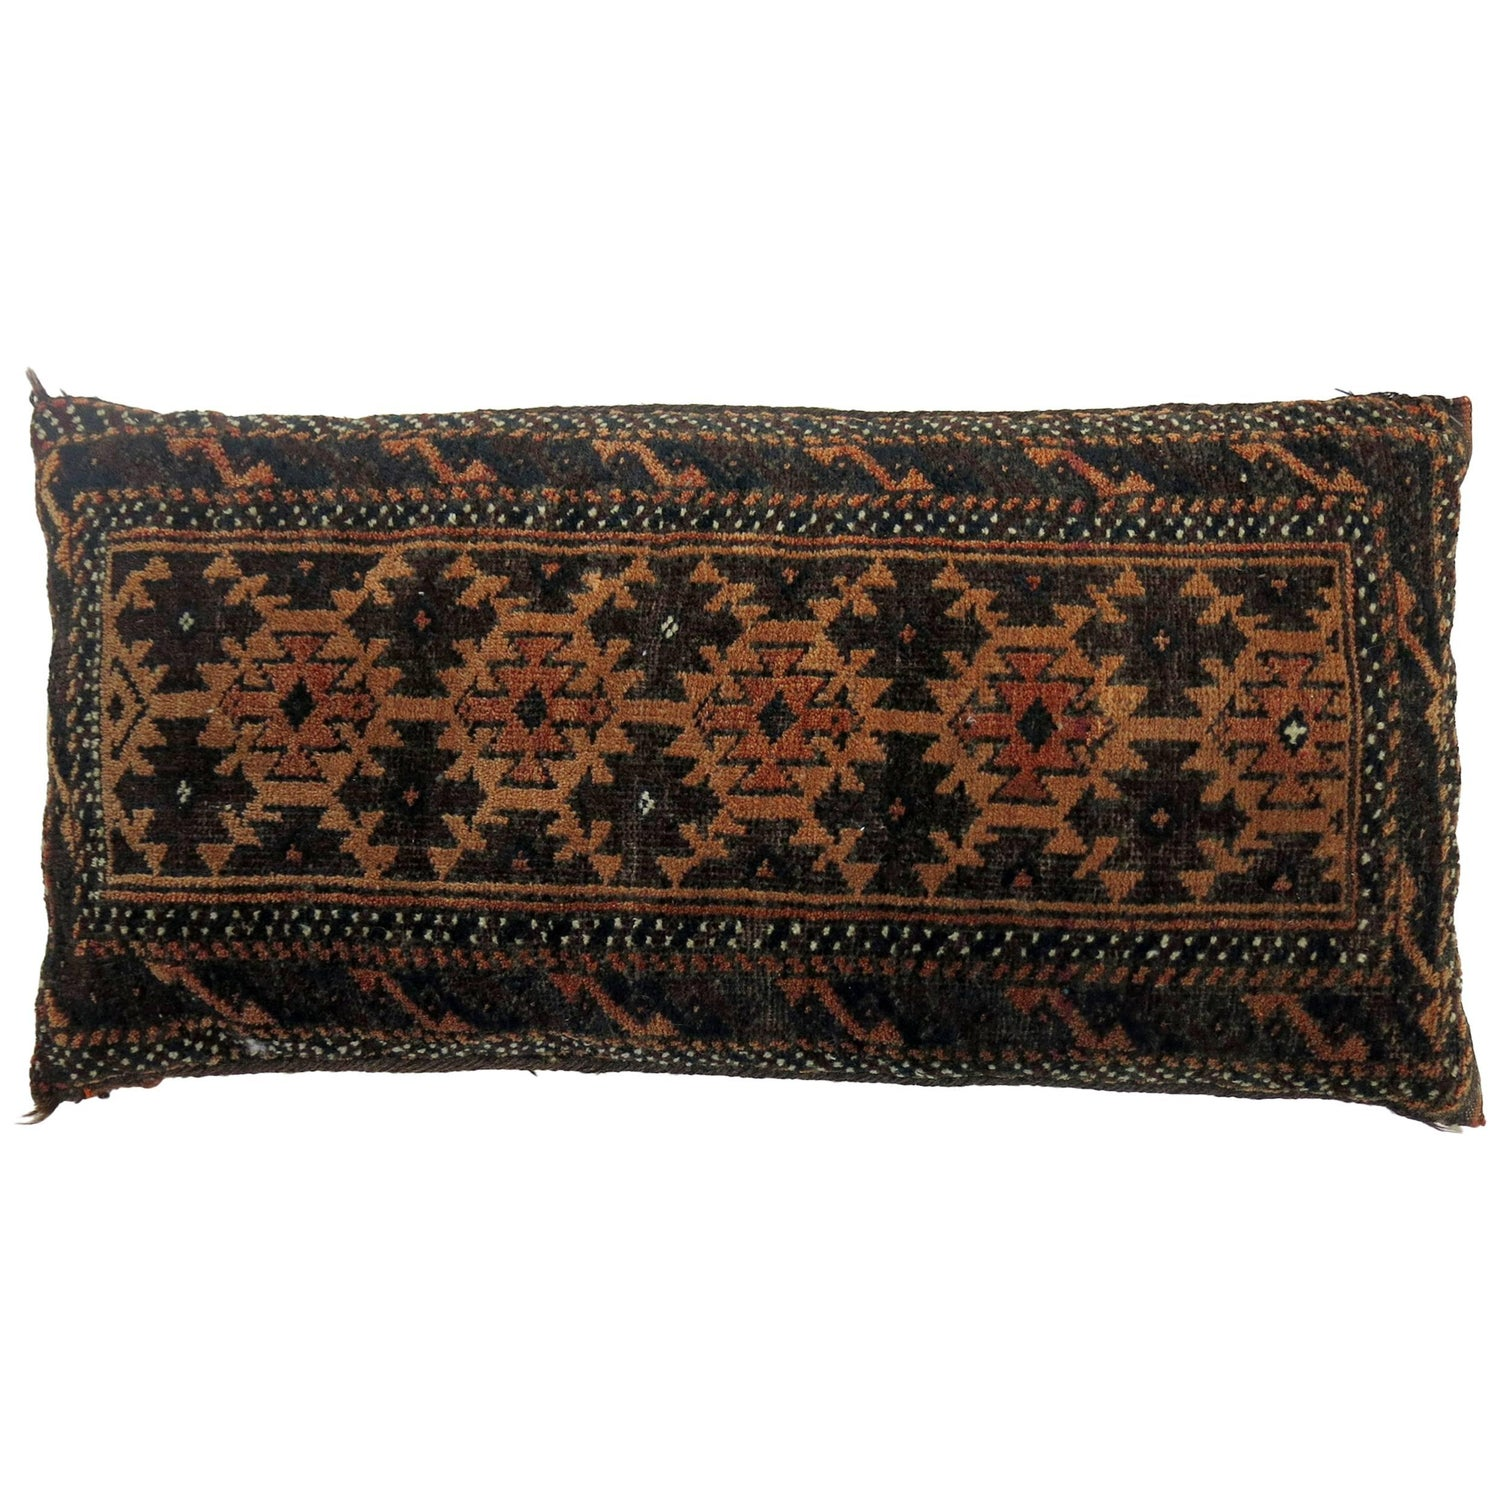 Antique Large Floor Pillow Made Out Of A Turkmen Tekke